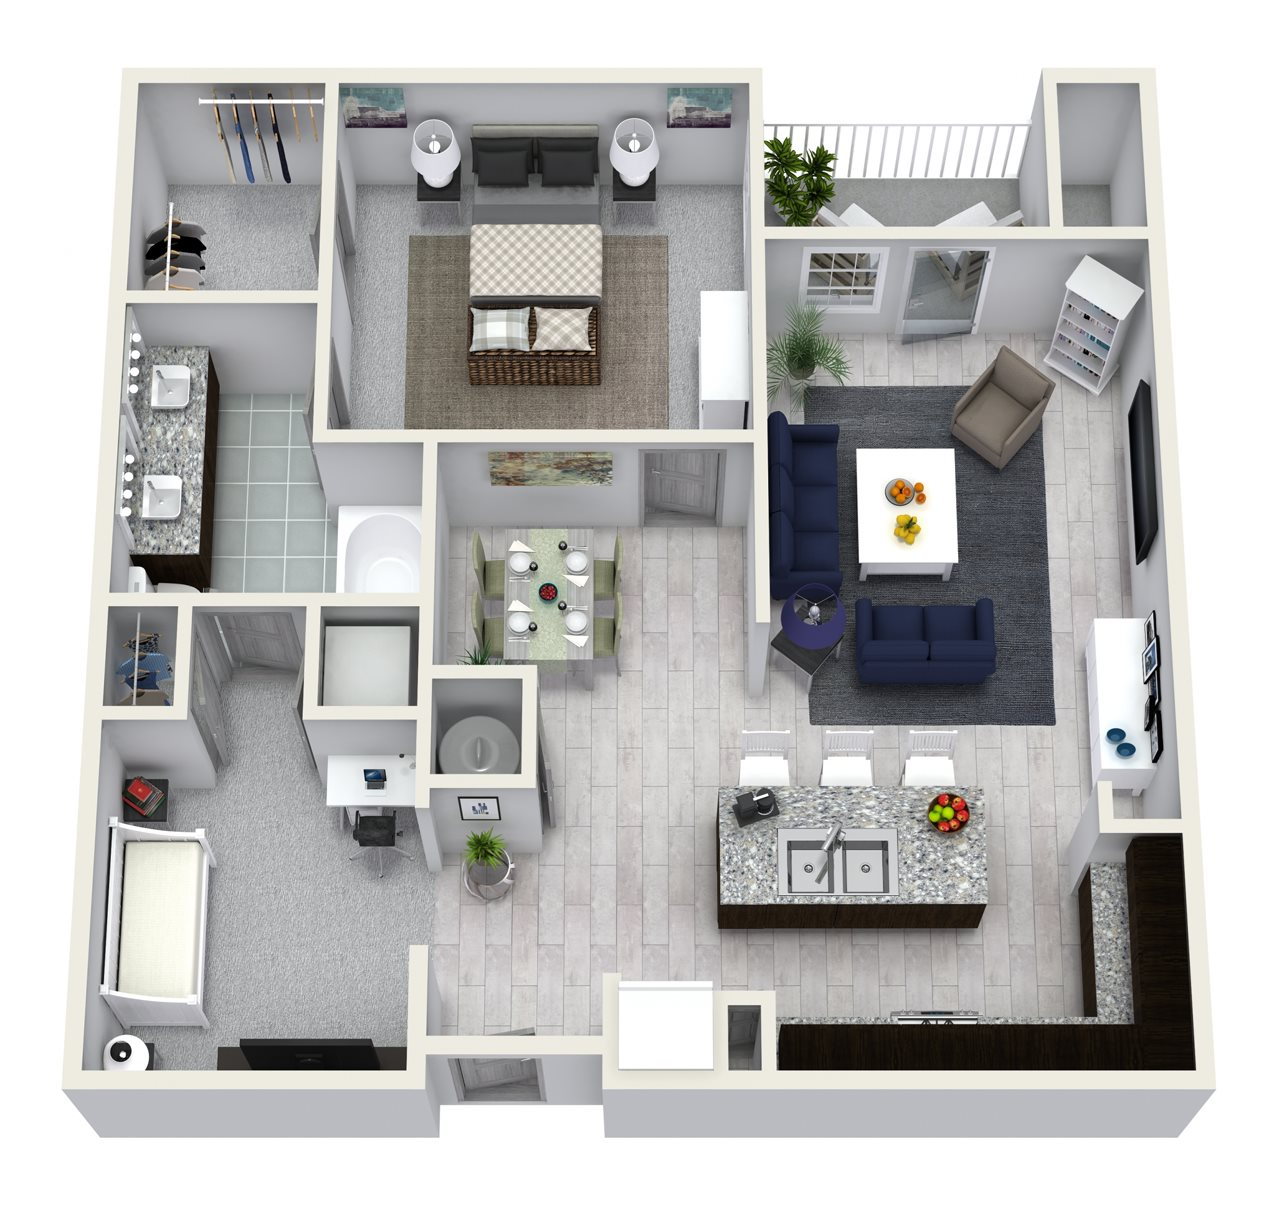 1 Bedroom 1 Bath 954 sqft A5 Floor Plan 5